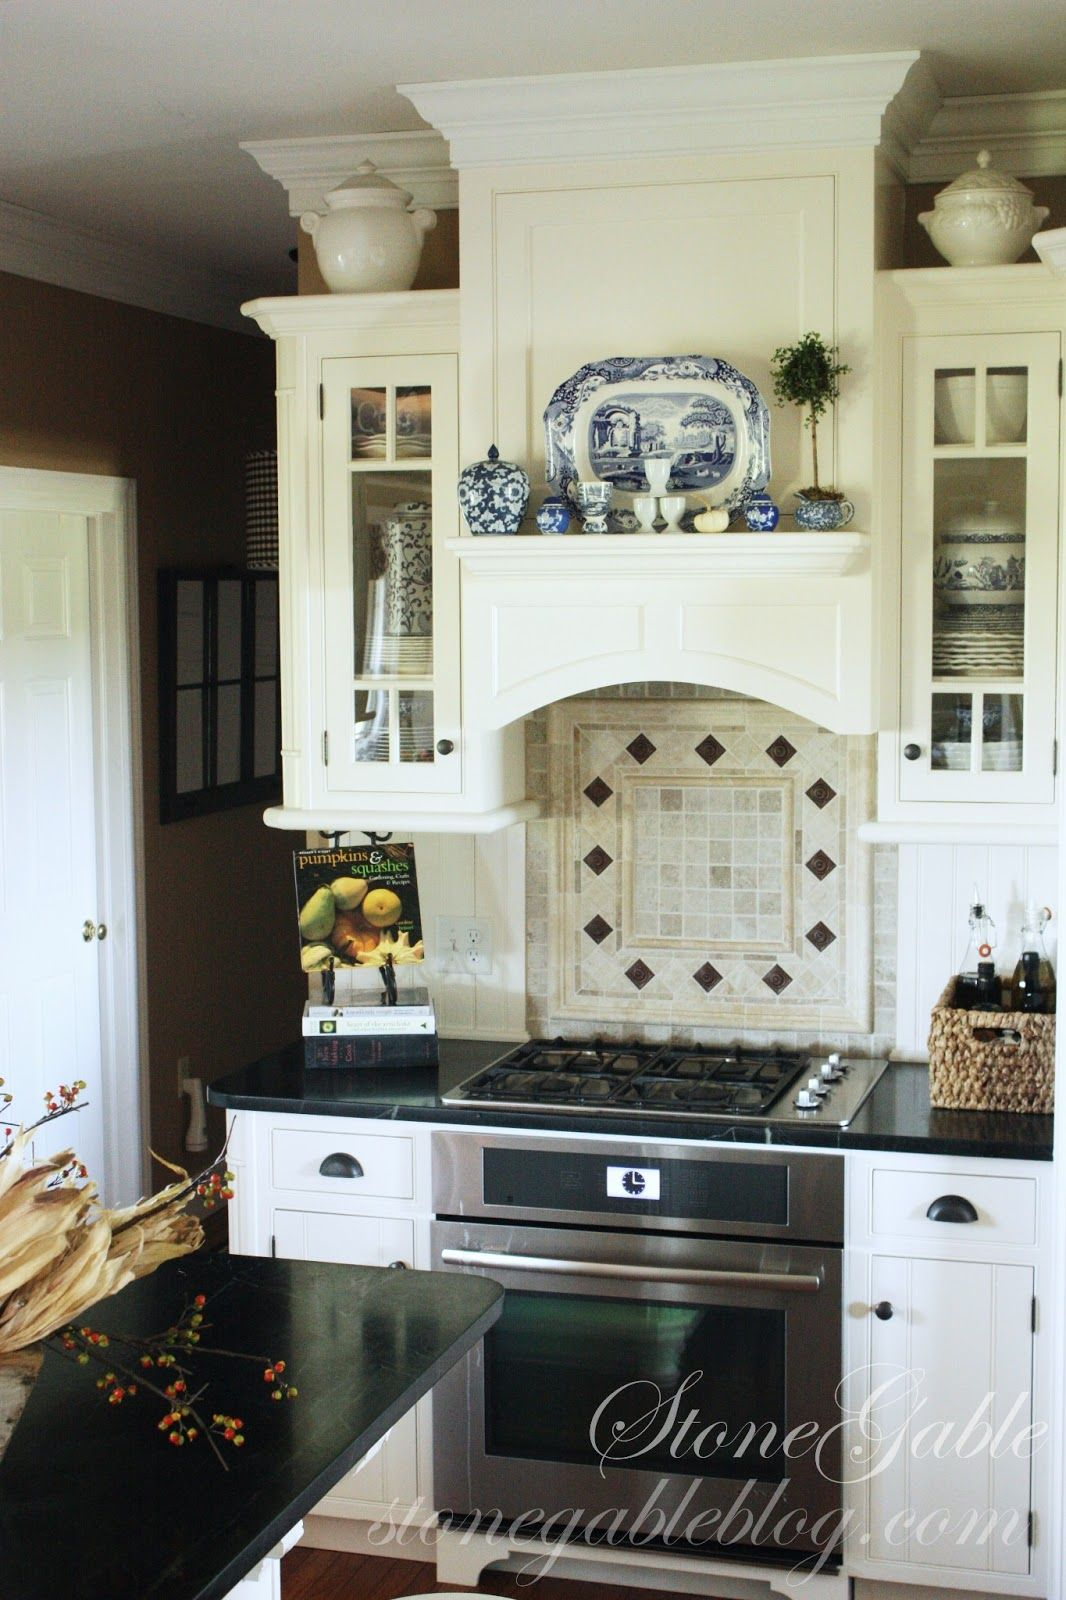 over the stove, high/ low cabinets with great hood | Cottage ... Over The Stove Kitchen Ideas on kitchen bookcase ideas, kitchen wood ideas, kitchen oven ideas, kitchen vent ideas, kitchen heating ideas, kitchen microwave ideas, kitchen range, kitchen cooktop ideas, kitchen spoon ideas, kitchen shelving unit ideas, kitchen phone ideas, kitchen dining set ideas, above cooktop backsplash ideas, kitchen fridge ideas, kitchen carpeting ideas, kitchen canister set ideas, microwave oven ideas, kitchen nook area ideas, kitchen breakfast counter ideas, kitchen couch ideas,